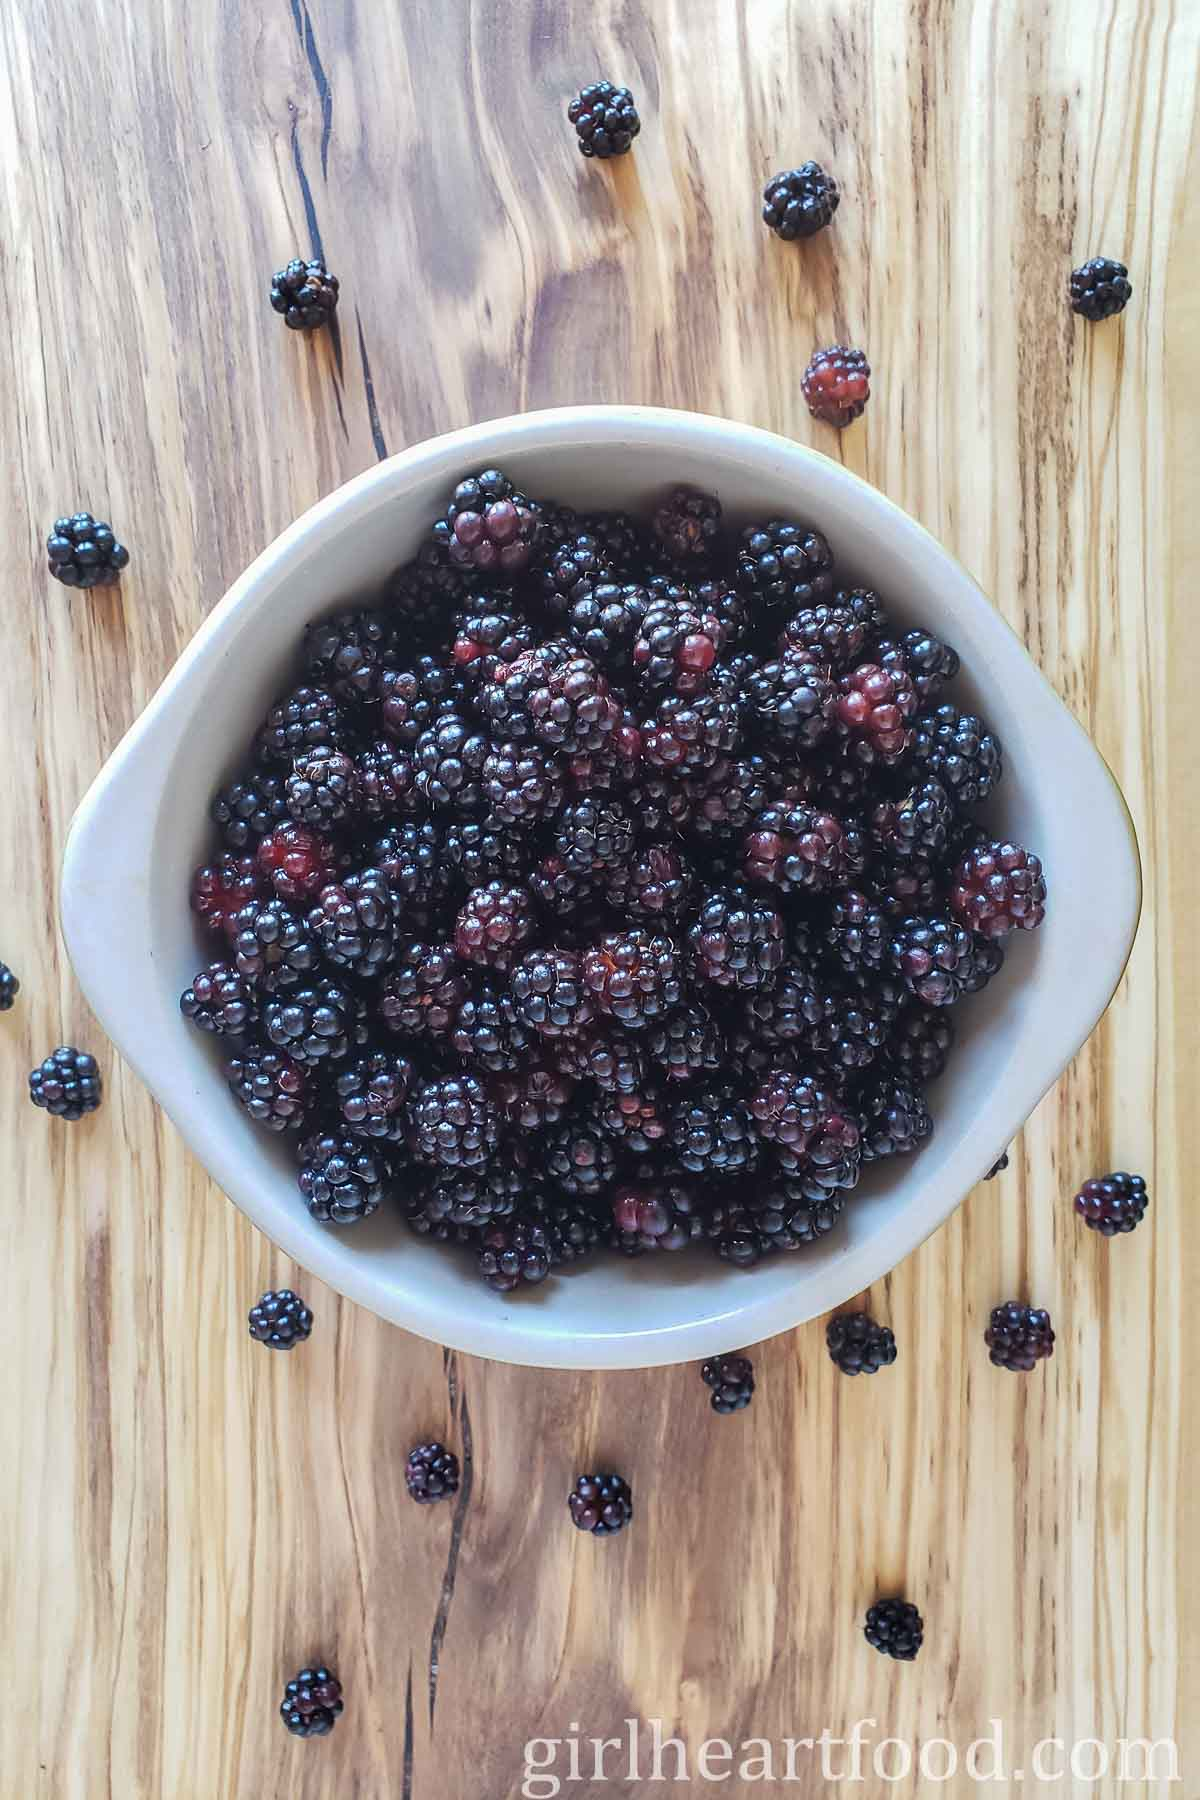 Bowl of fresh blackberries with some on a wooden board.